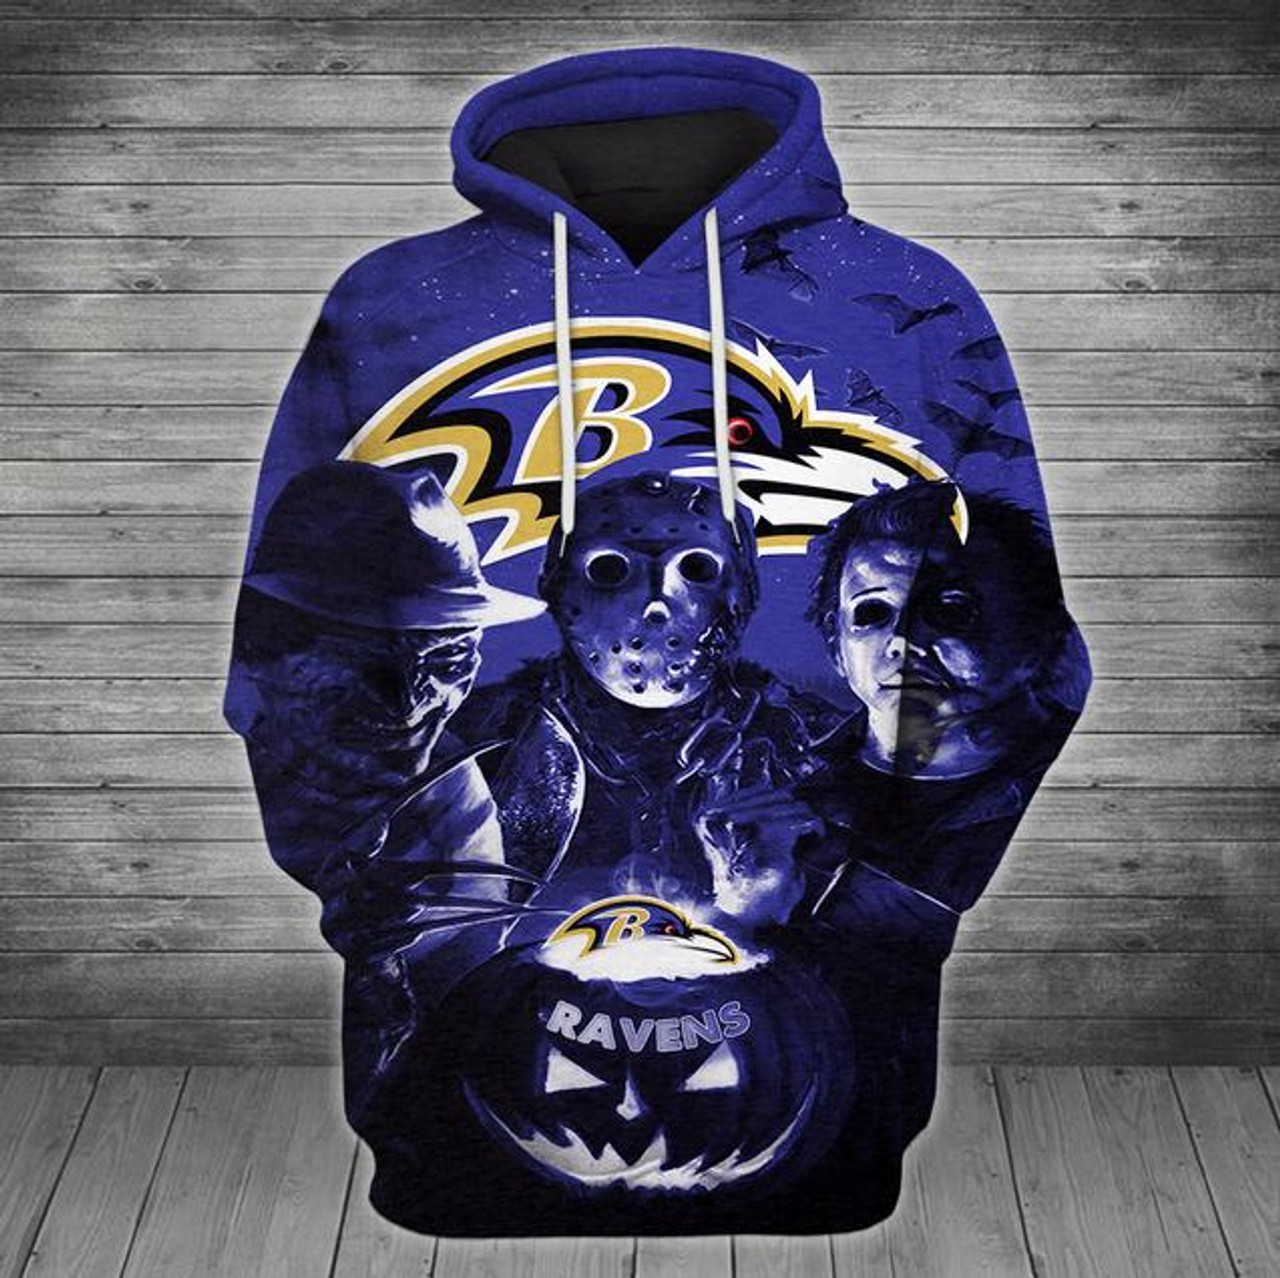 **(OFFICIALLY-LICENSED-N F L BALTIMORE-RAVENS/CLASSIC-HALLOWEEN-HORROR-MOVIE-CHARACTERS-PULLOVER-HOODIES/NICE-DETAILED-PREMIUM-CUSTOM-3D-GRAPHIC-PRINT